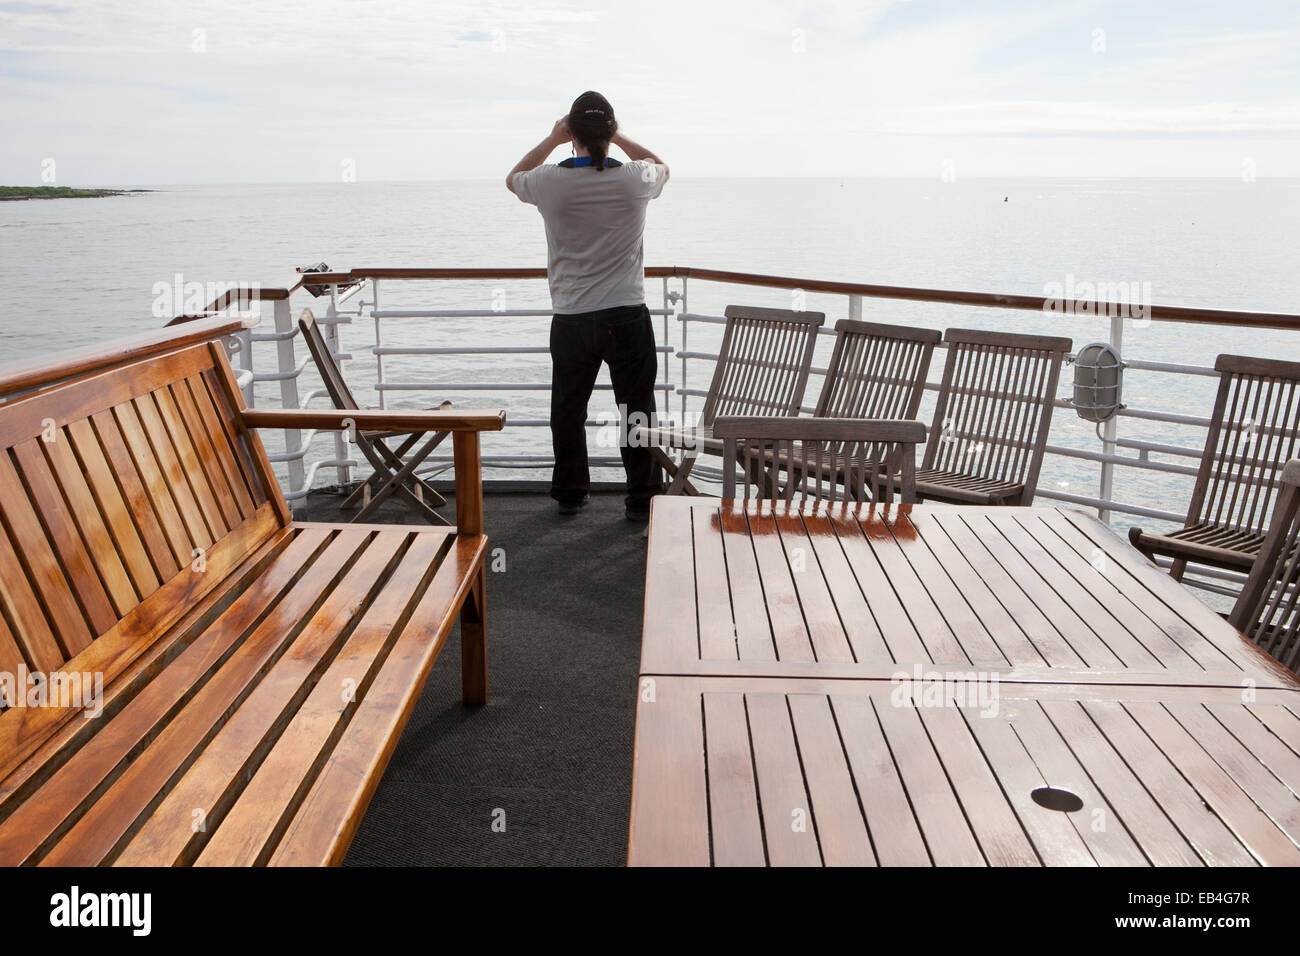 A passenger on an expedition vessel looks out at the Pacific Ocean en route to the Galapagos Islands. - Stock Image